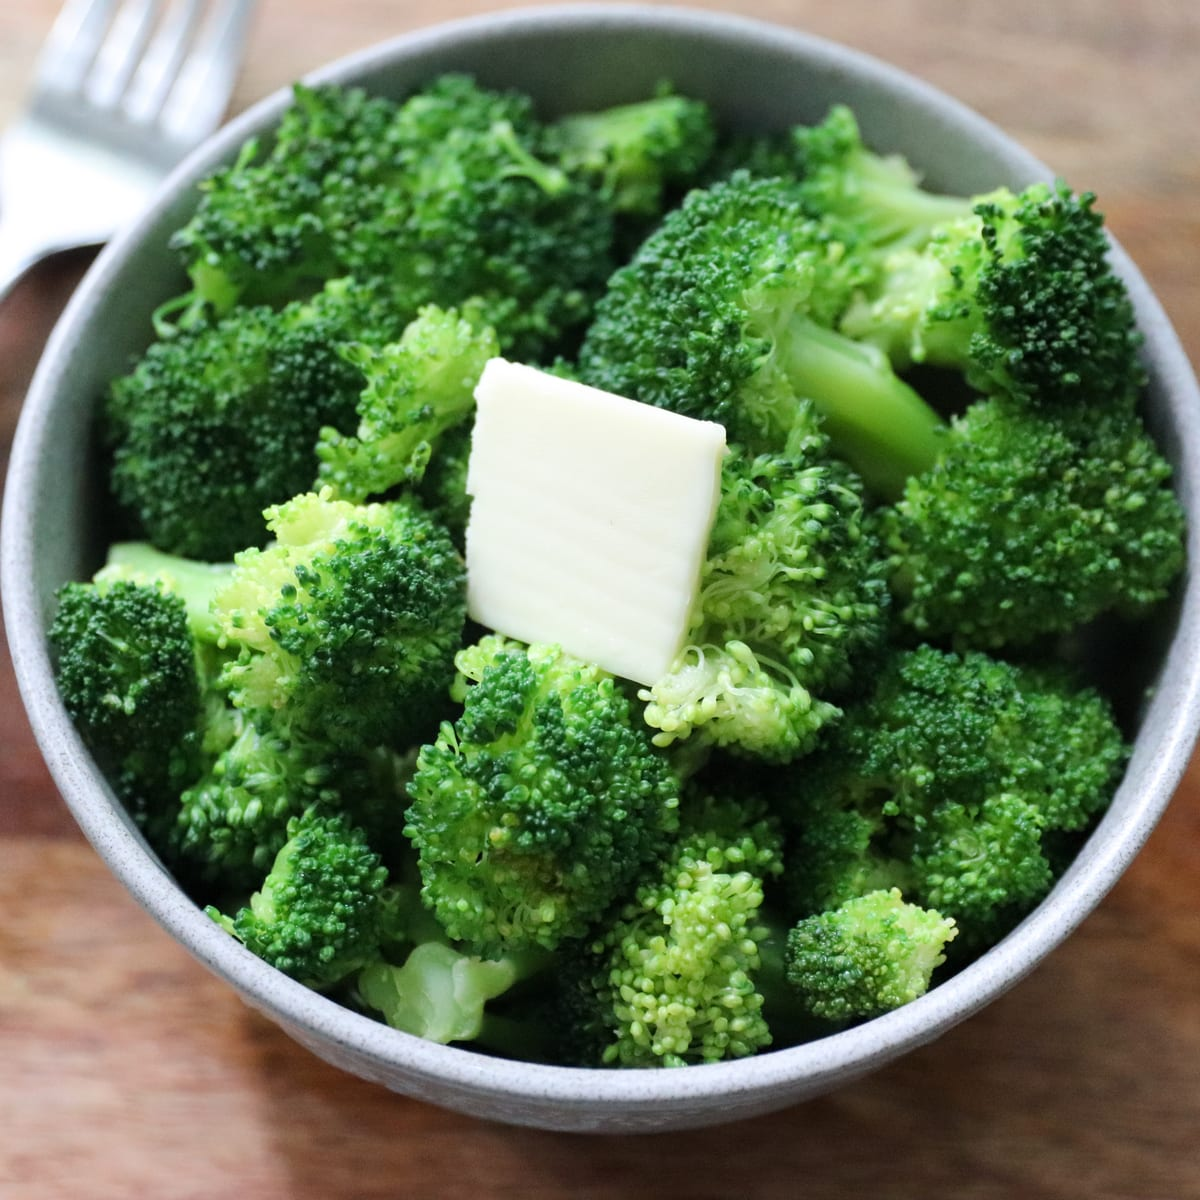 A gray bowl filled with bright green cooked broccoli.